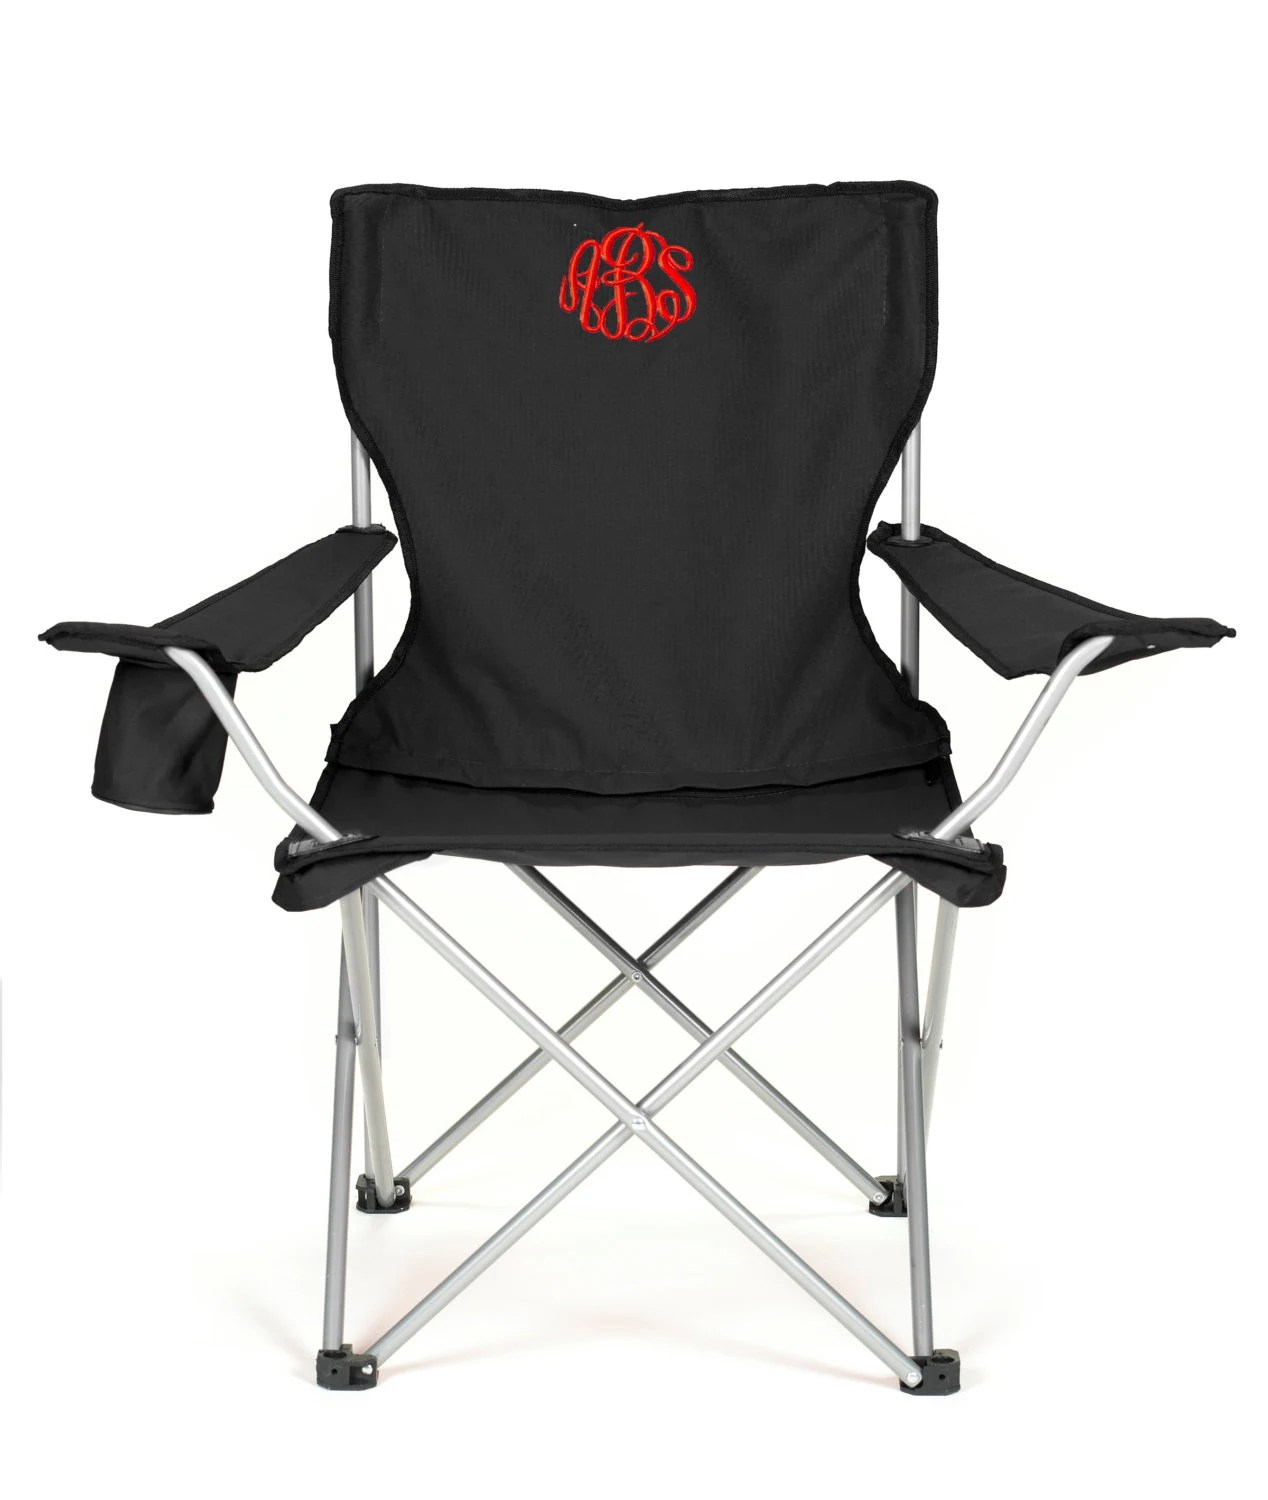 personalized folding chair hanging egg chairs australia monogrammed camping tailgating ballgame